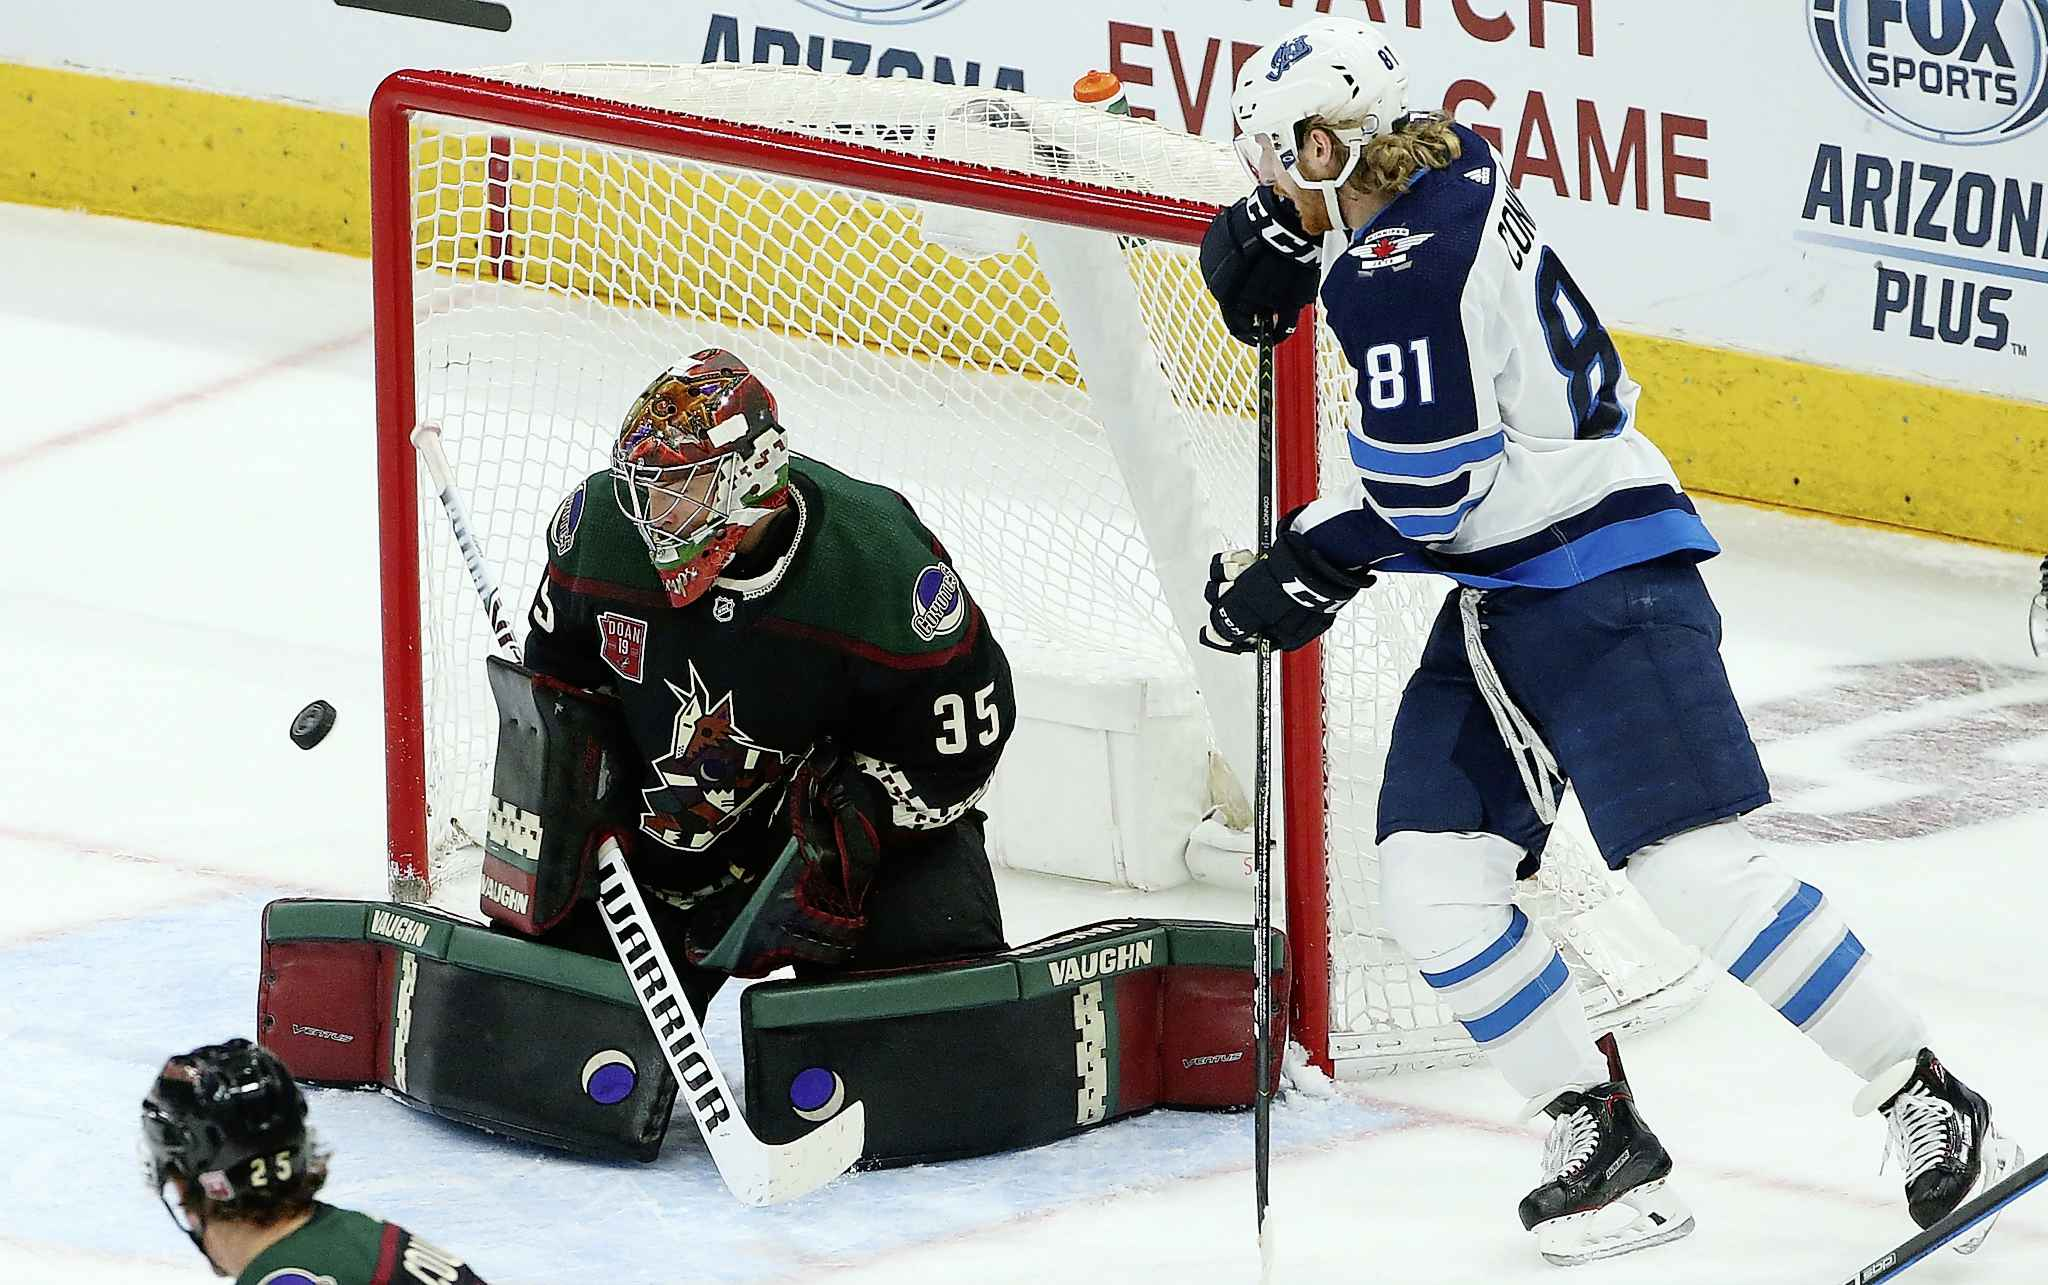 ROSS D. FRANKLIN / THE ASSOCIATED PRESS</p><p>Arizona Coyotes goaltender Darcy Kuemper (35) makes a save on a shot by Winnipeg Jets left wing Kyle Connor (81) during the second period of an NHL hockey game Sunday, Feb. 24, 2019, in Glendale, Ariz.</p>